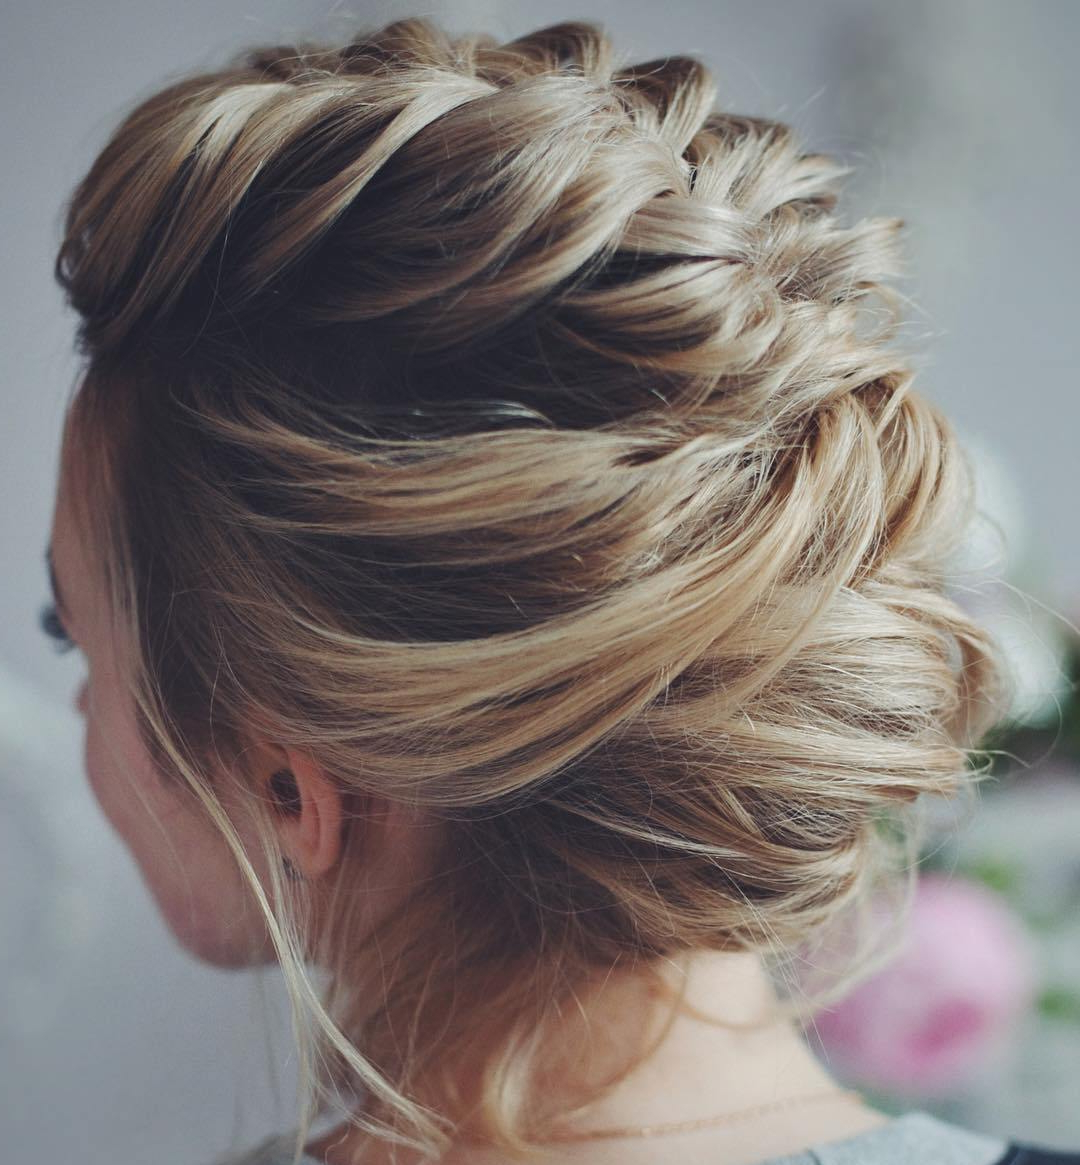 Recent Fancy Knot Prom Hairstyles For Cute Prom Hairstyles (best Prom Hair Styles In 2019) (Gallery 18 of 20)